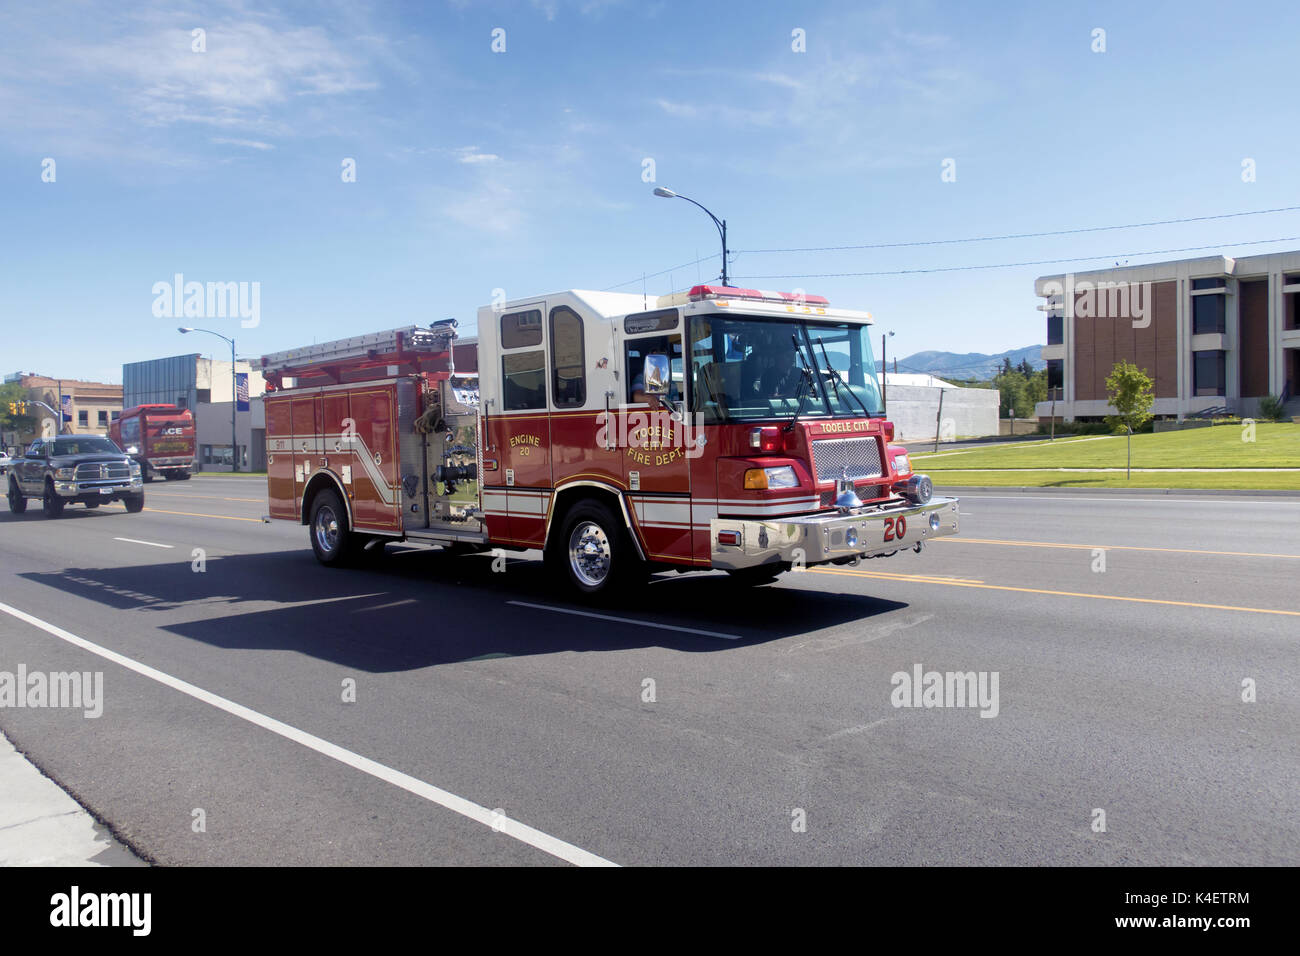 A red fire truck driving down main street after a canceled call. - Stock Image